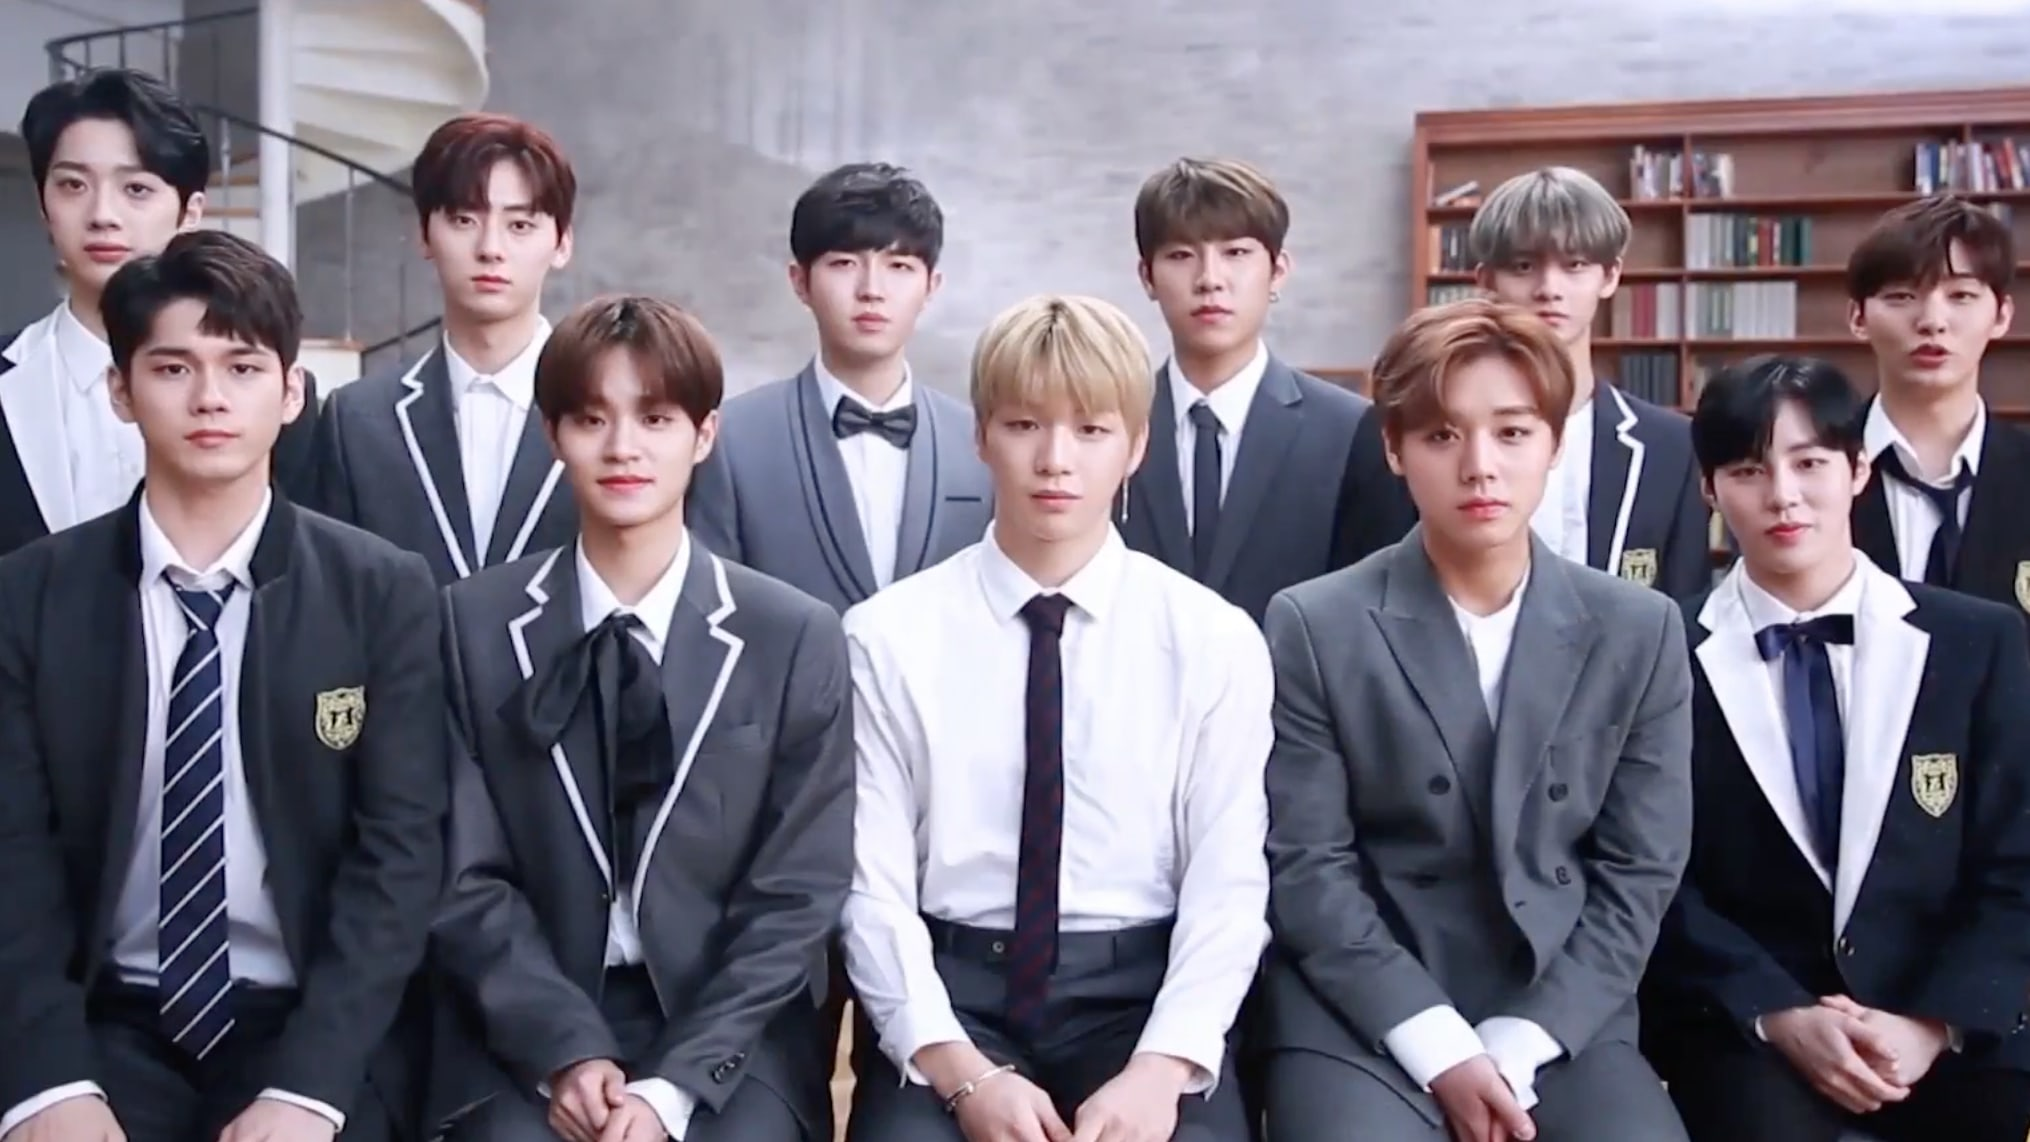 wanna one announces plans to release special theme track ahead of